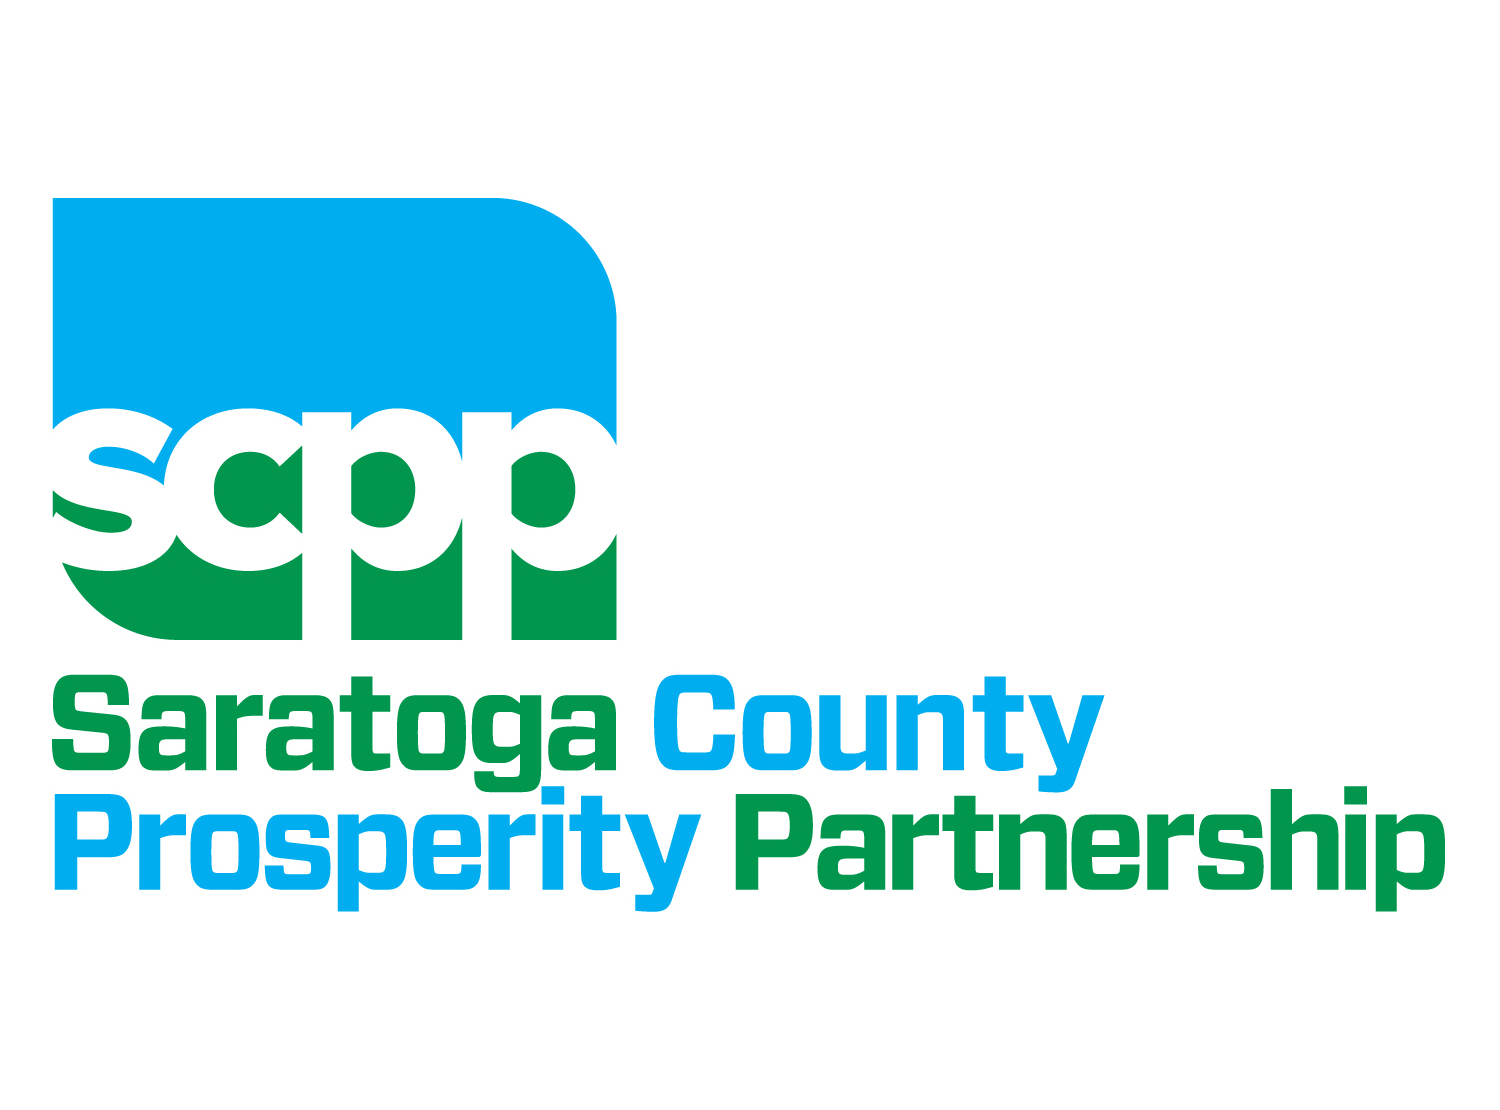 prosperity partnership logo hc.jpg